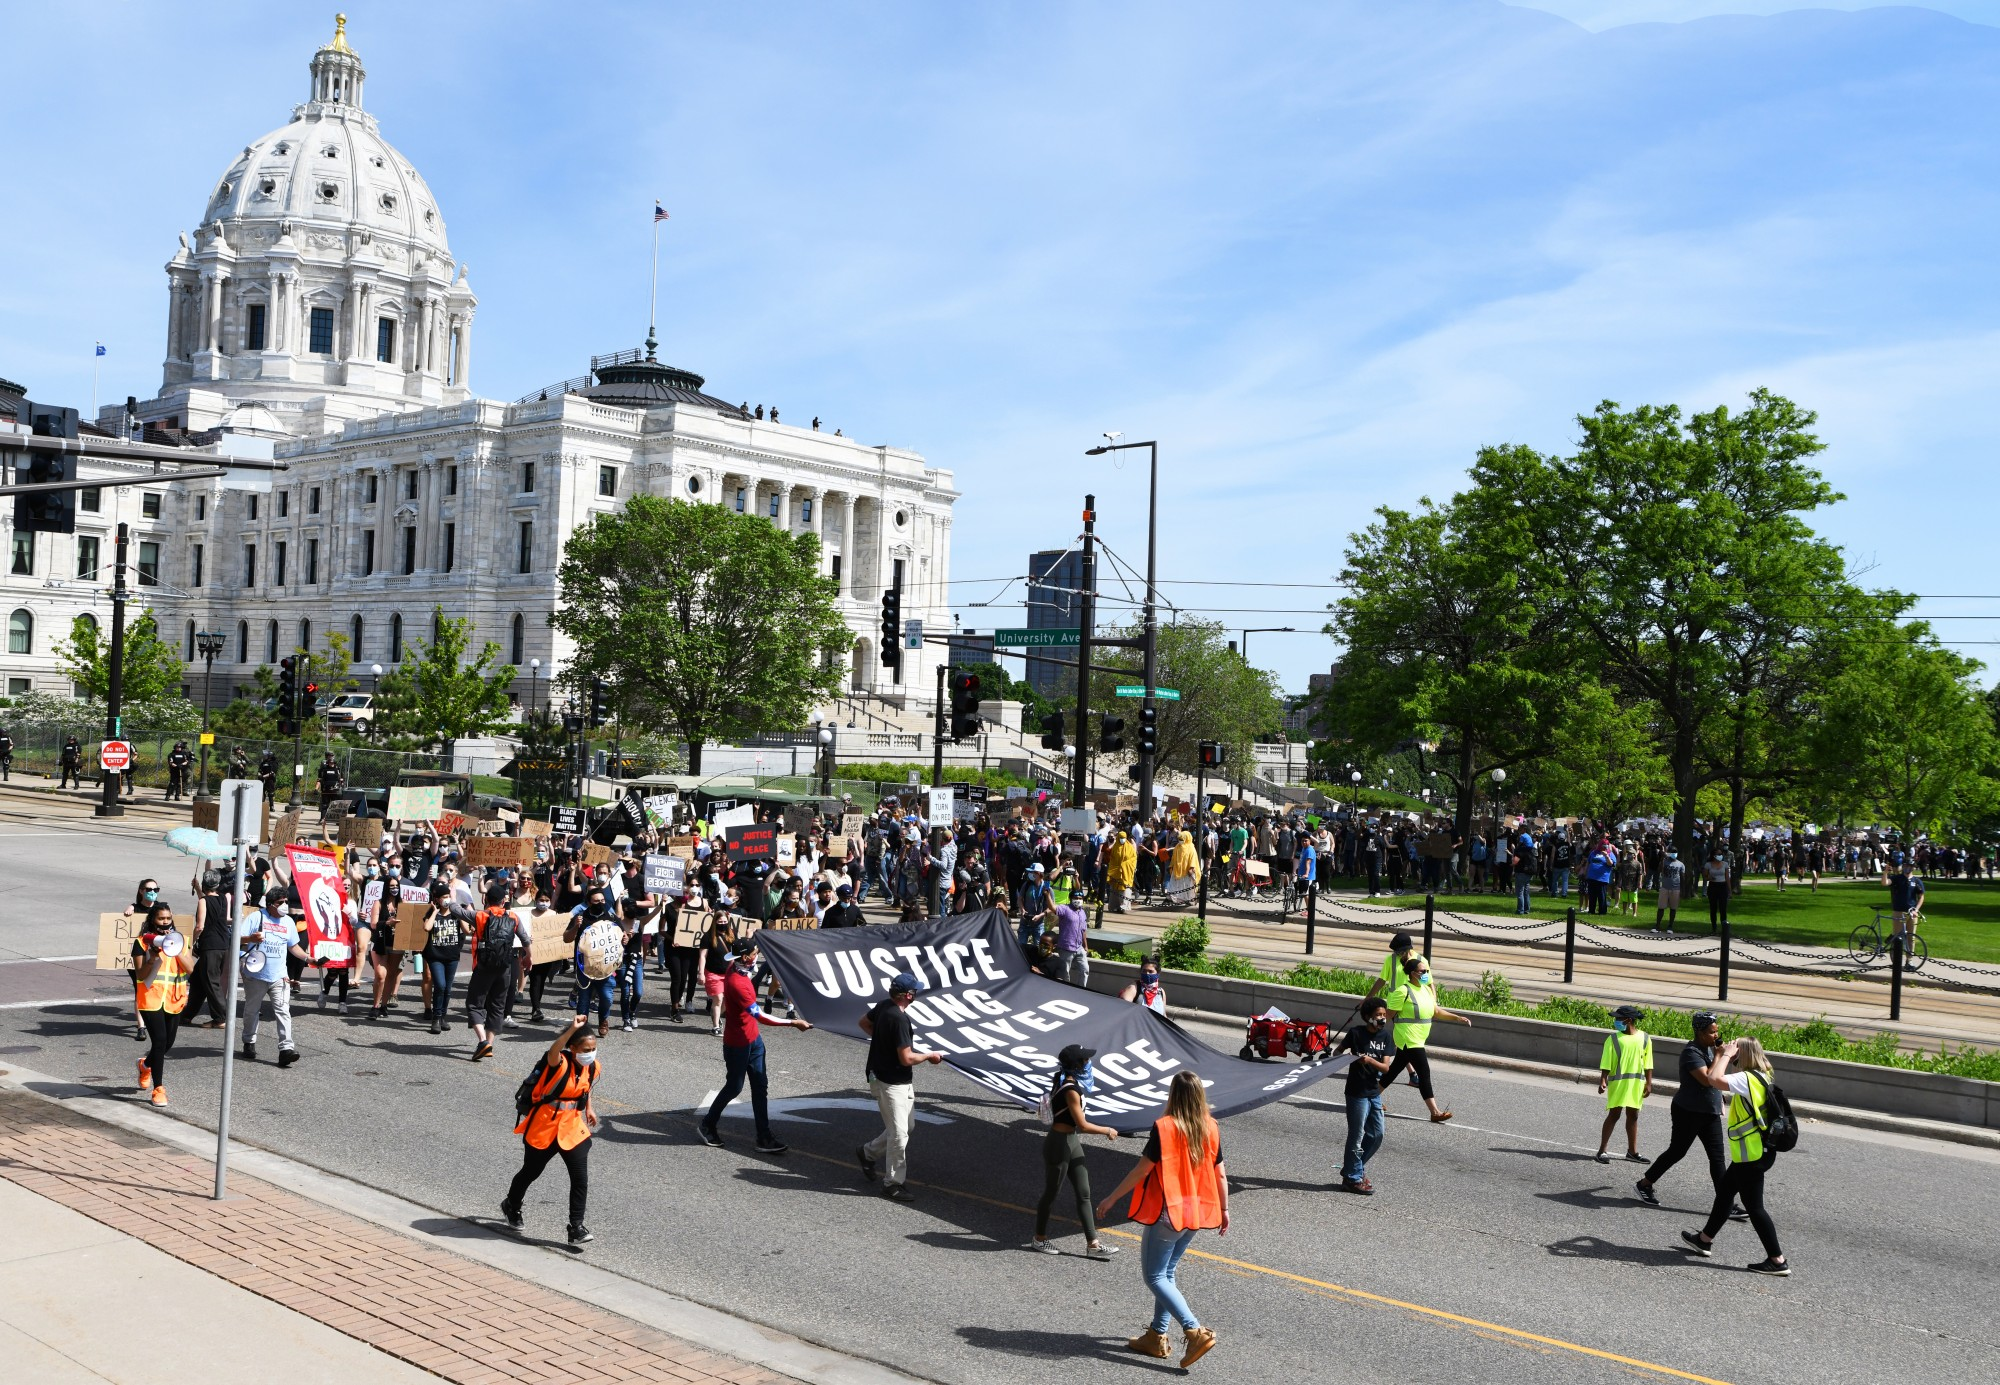 Demonstrators march past the Minnesota State Capitol on Sunday, May 31.